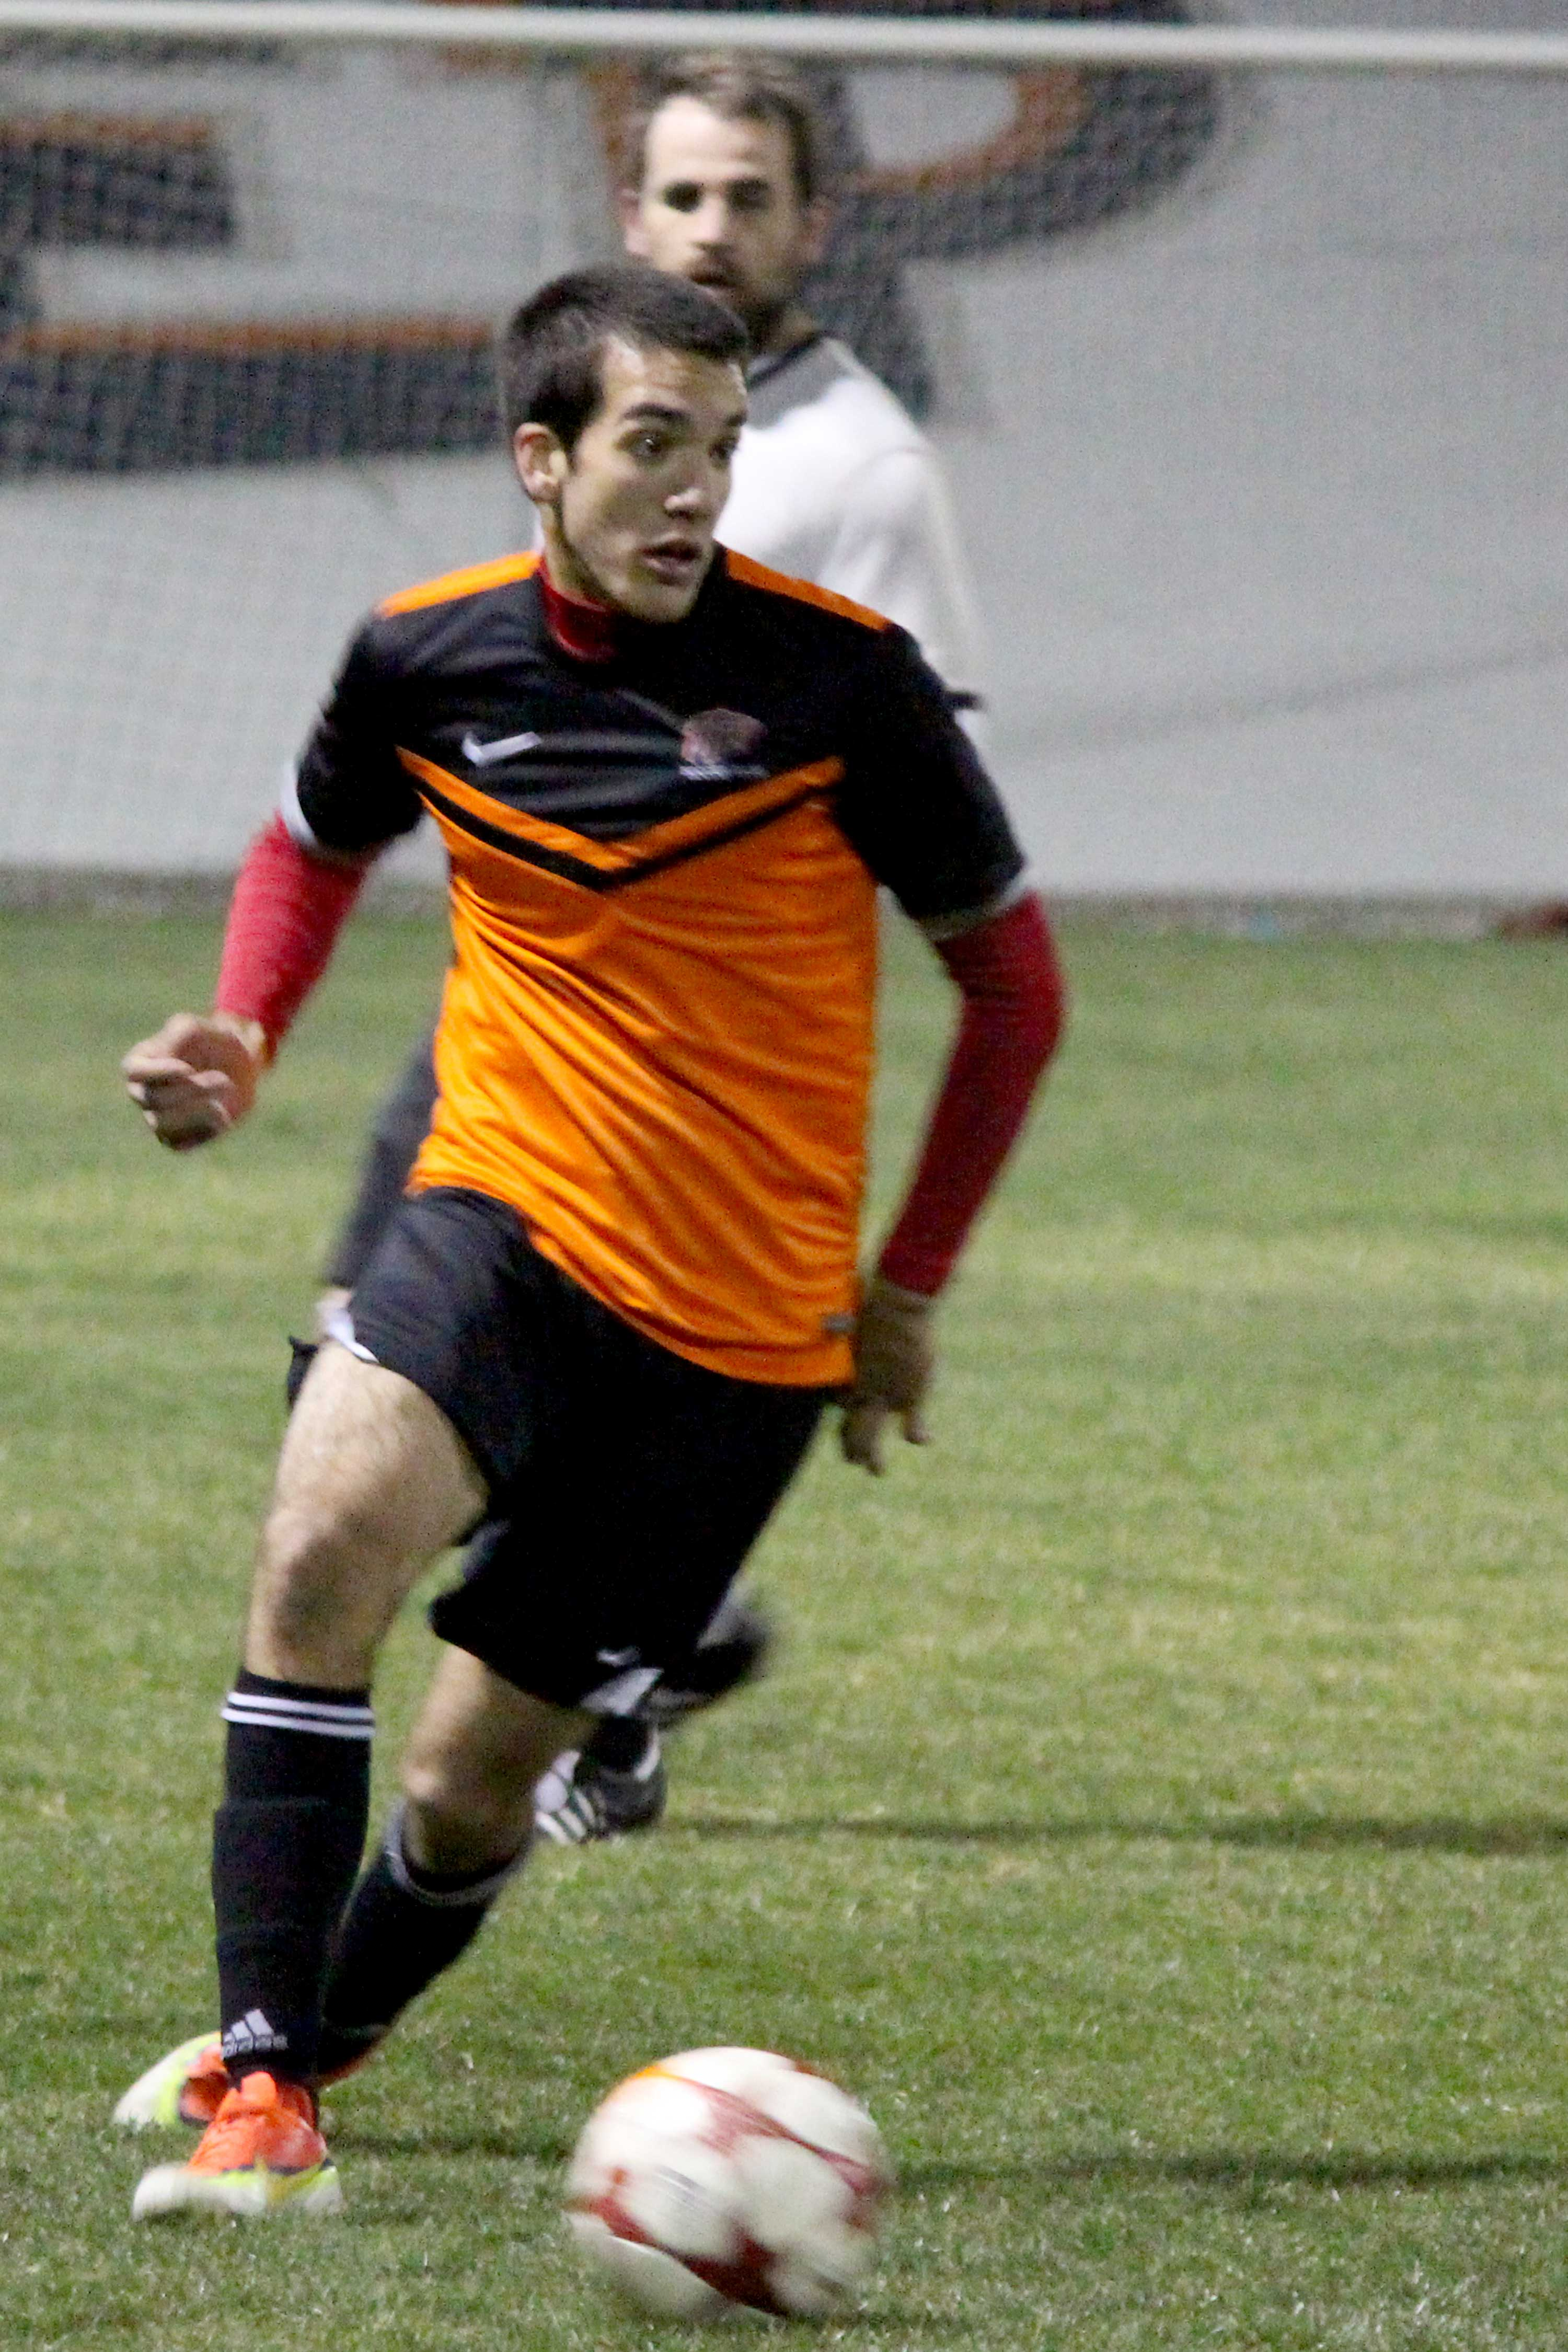 The UTEP club soccer team will play their first game in Memphis against the University of Virginia on Nov. 20.